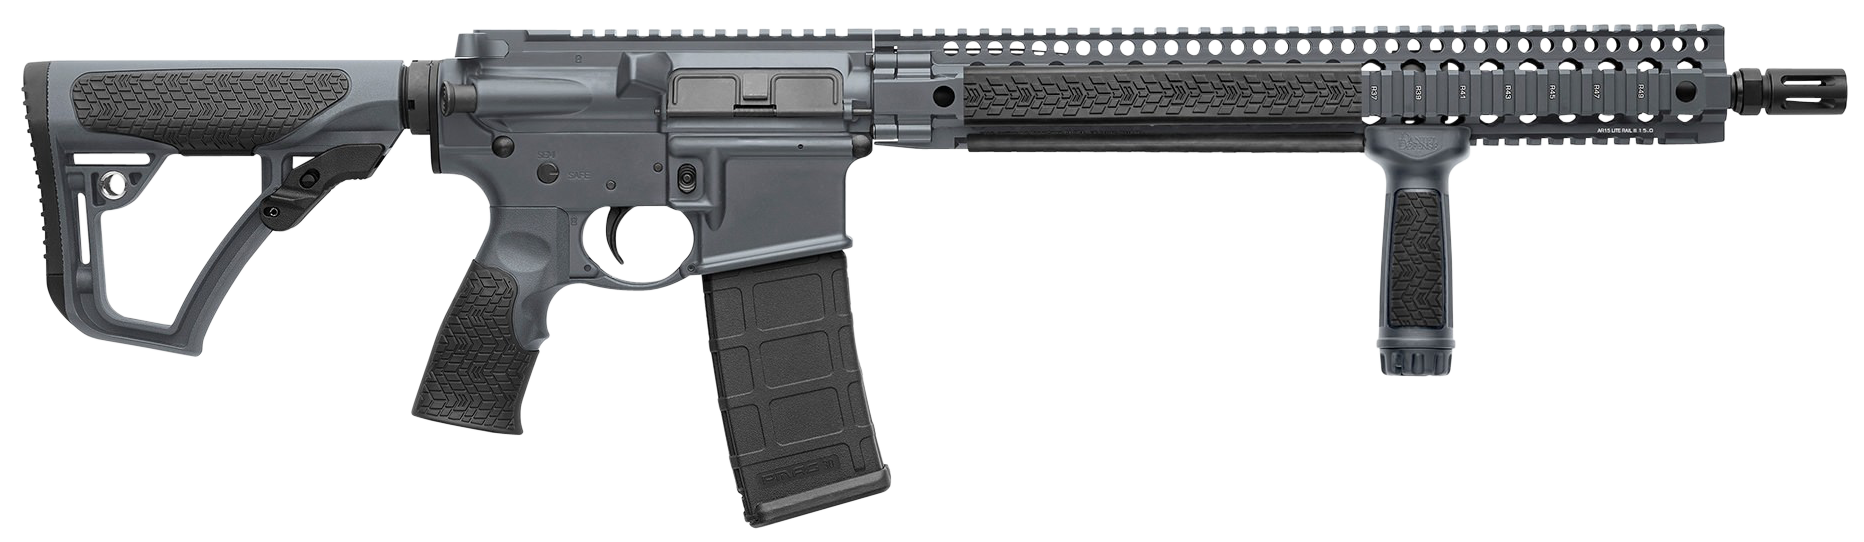 Daniel Defense 01035047 DDM4 V9 LW Tornado Semi-Automatic 223 Remington/5.56 NATO 16